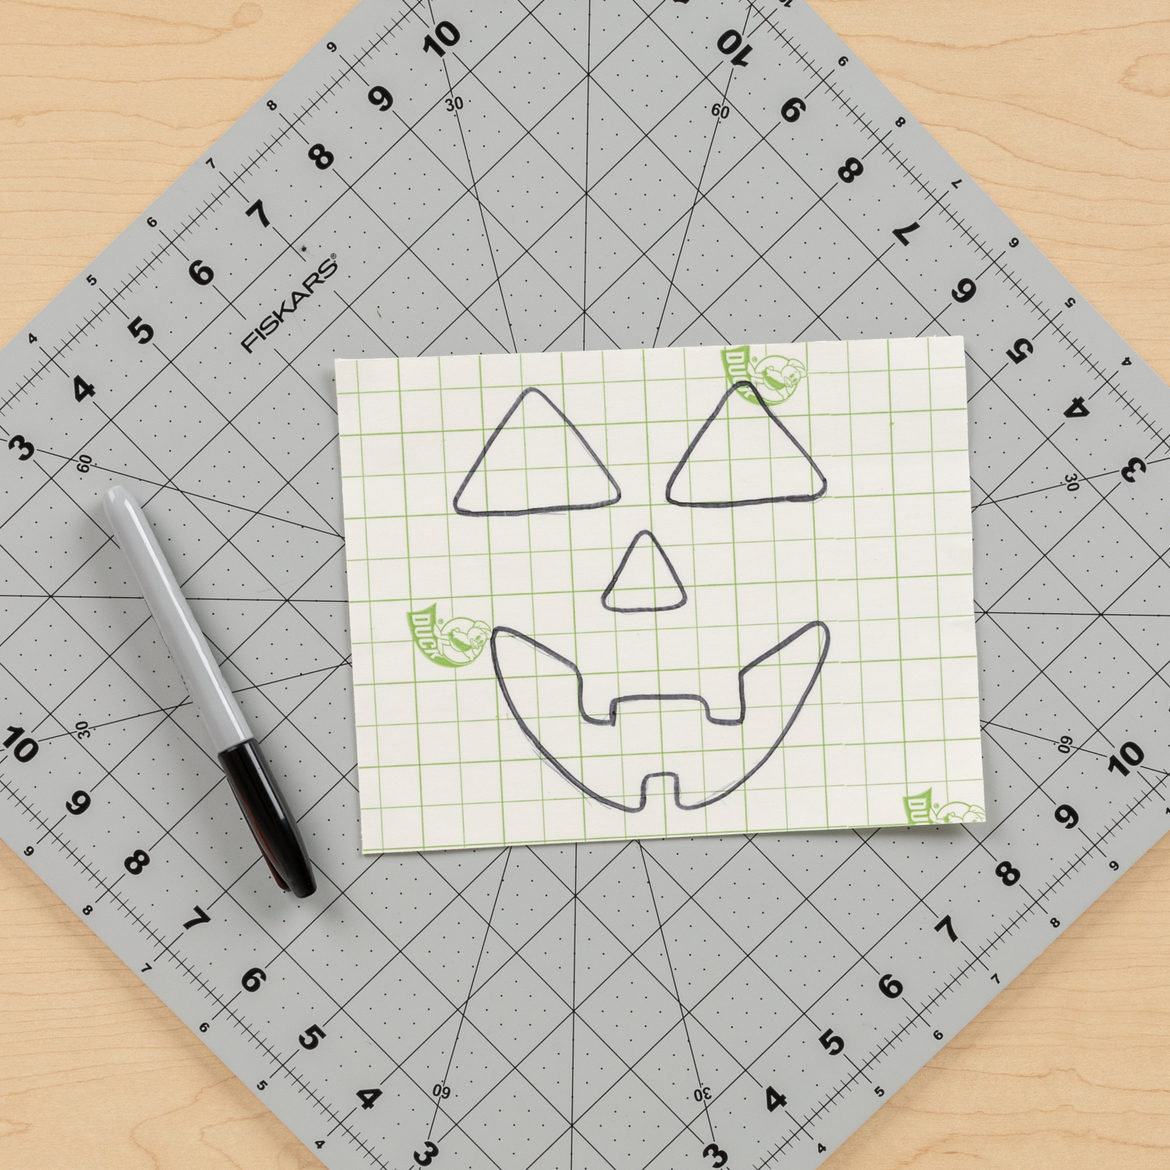 Pumpkin face drawn onto fabric from previous step